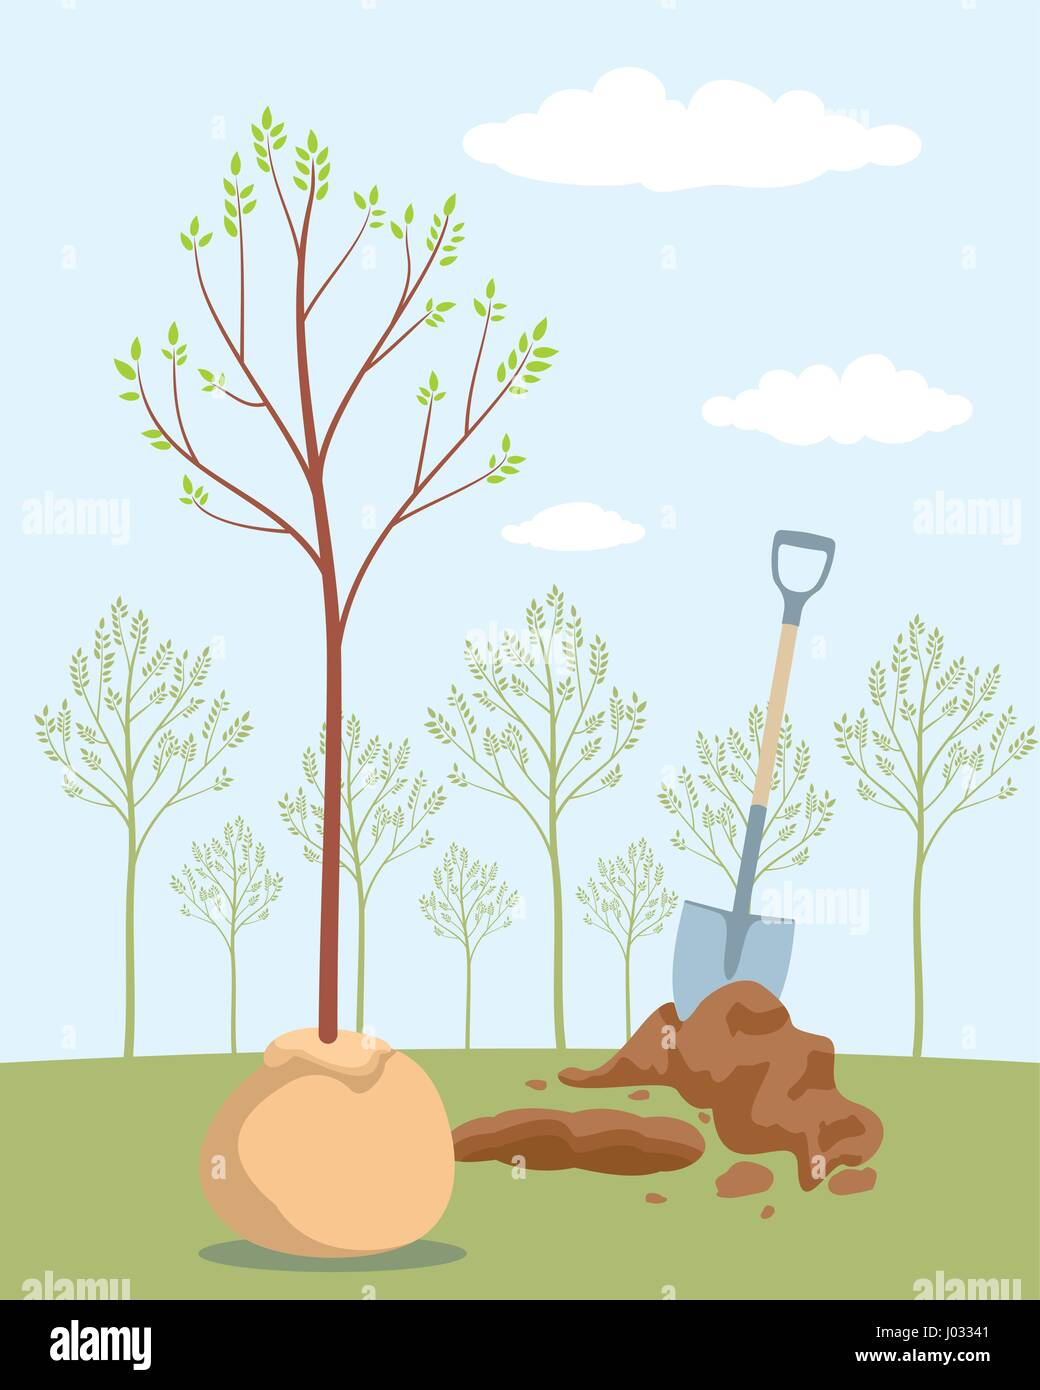 Seeding fruit tree. Planting sapling tree. Save trees day of forests. Orchard planting. Vector illustration - Stock Vector